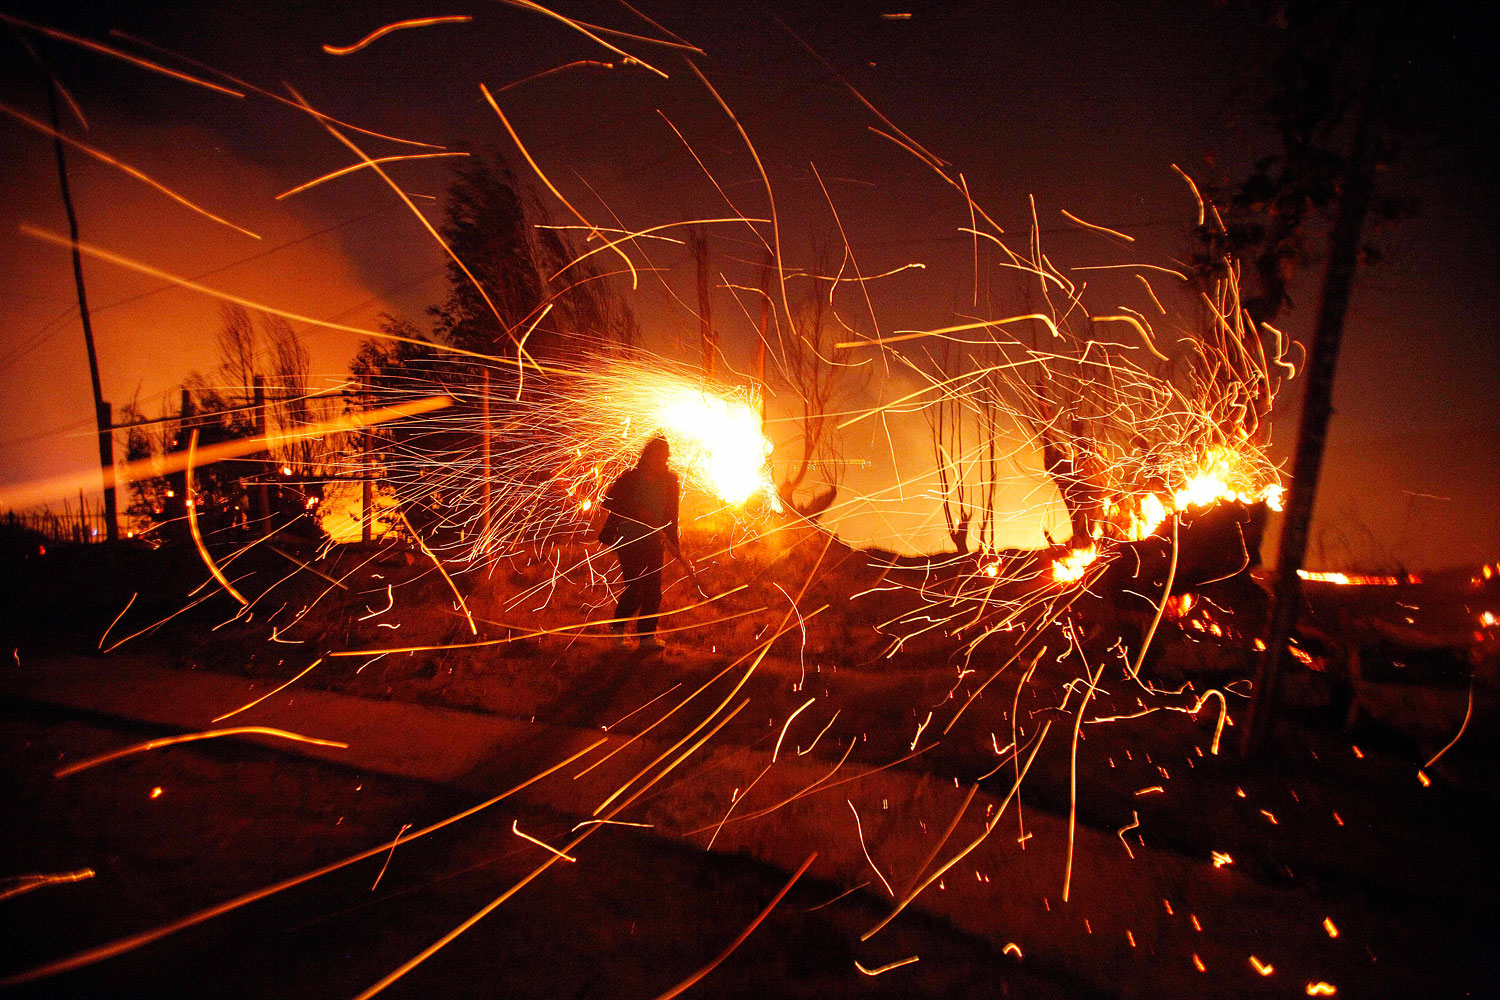 A person tries to extinguish flames as sparks fly, April 13, 2014.